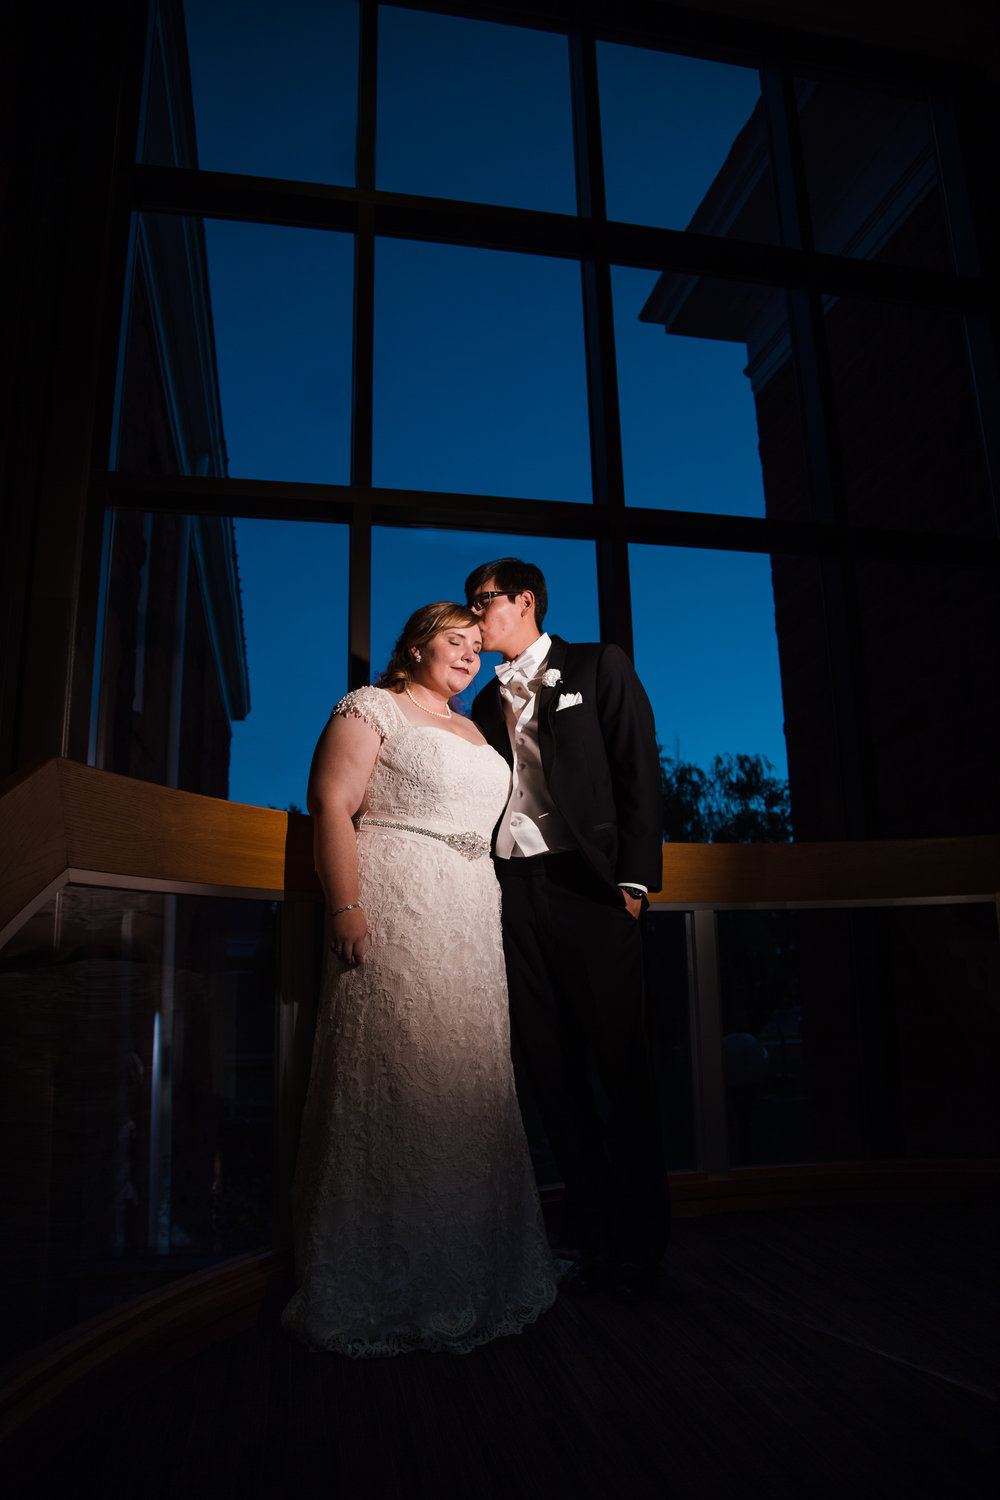 Northern Arizona University wedding